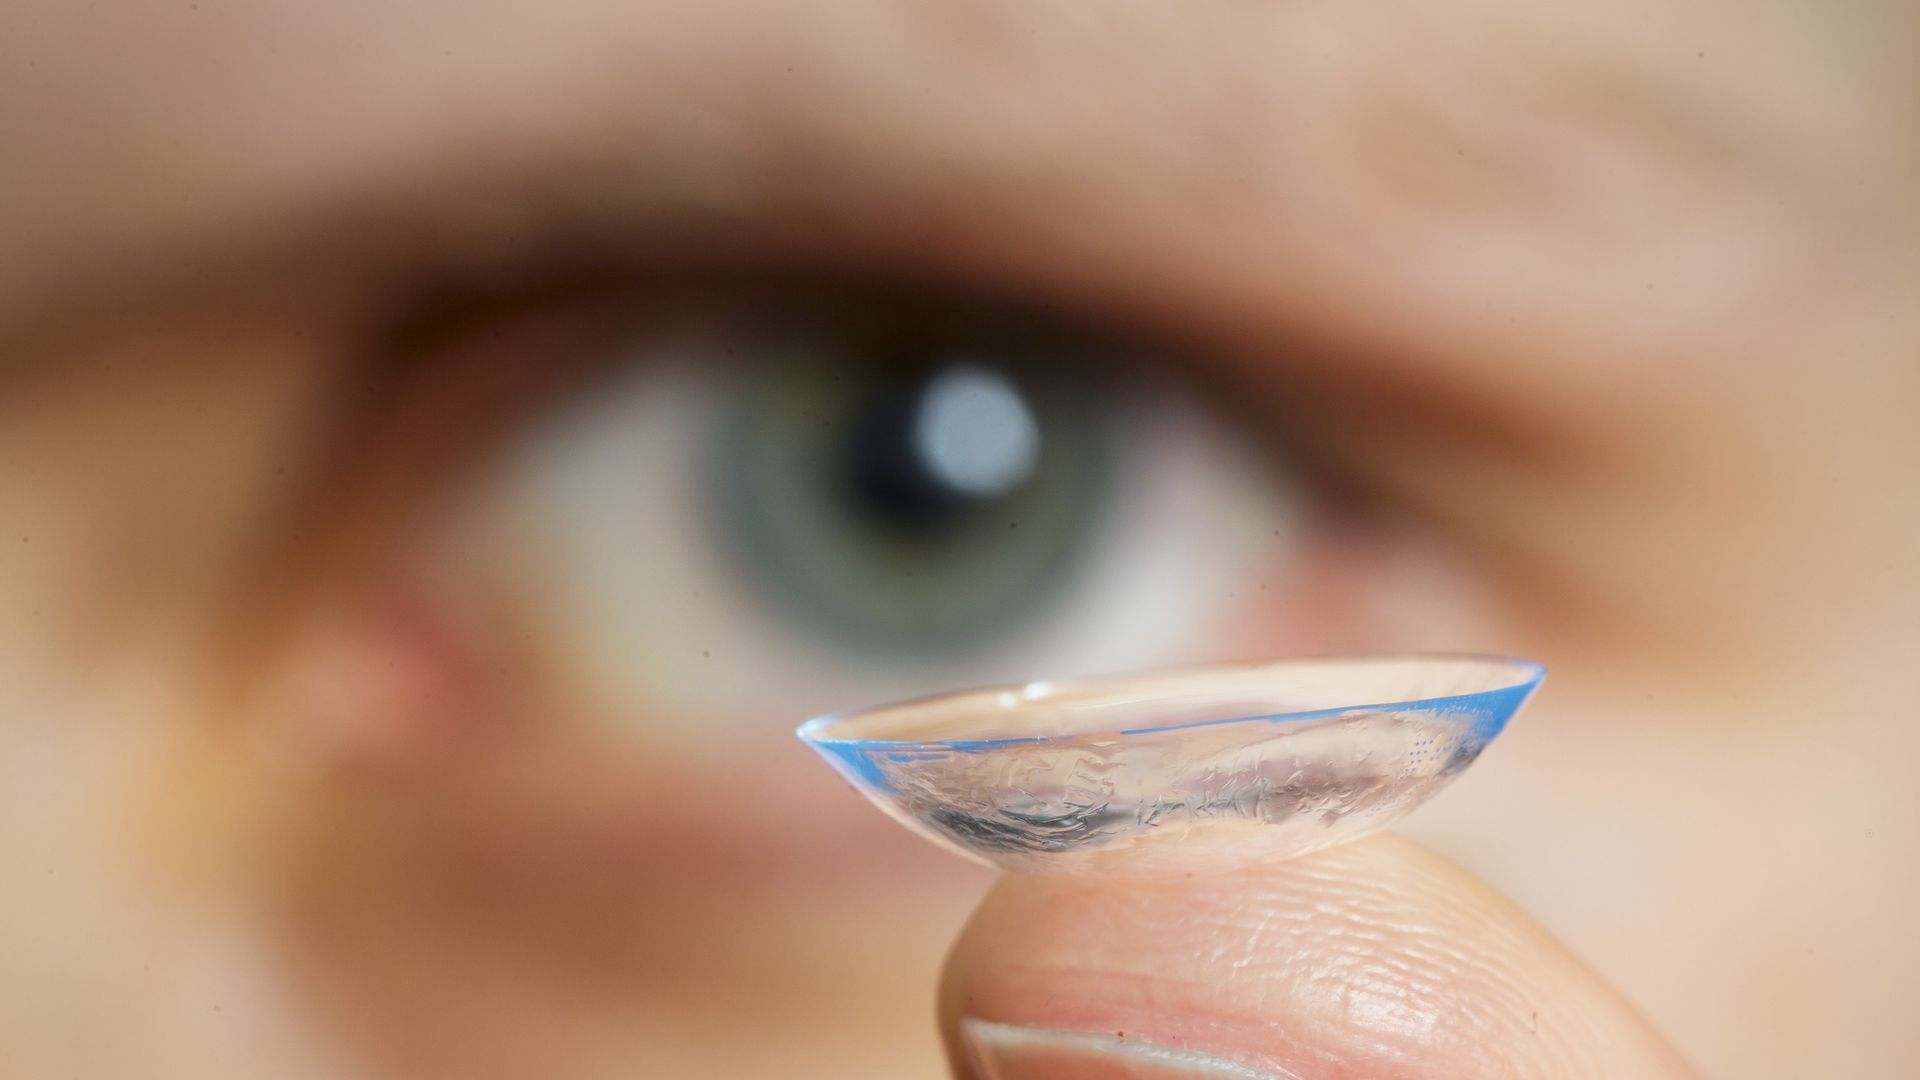 Someone holding up a contact lens on their finger with a blurred blue eye in the background